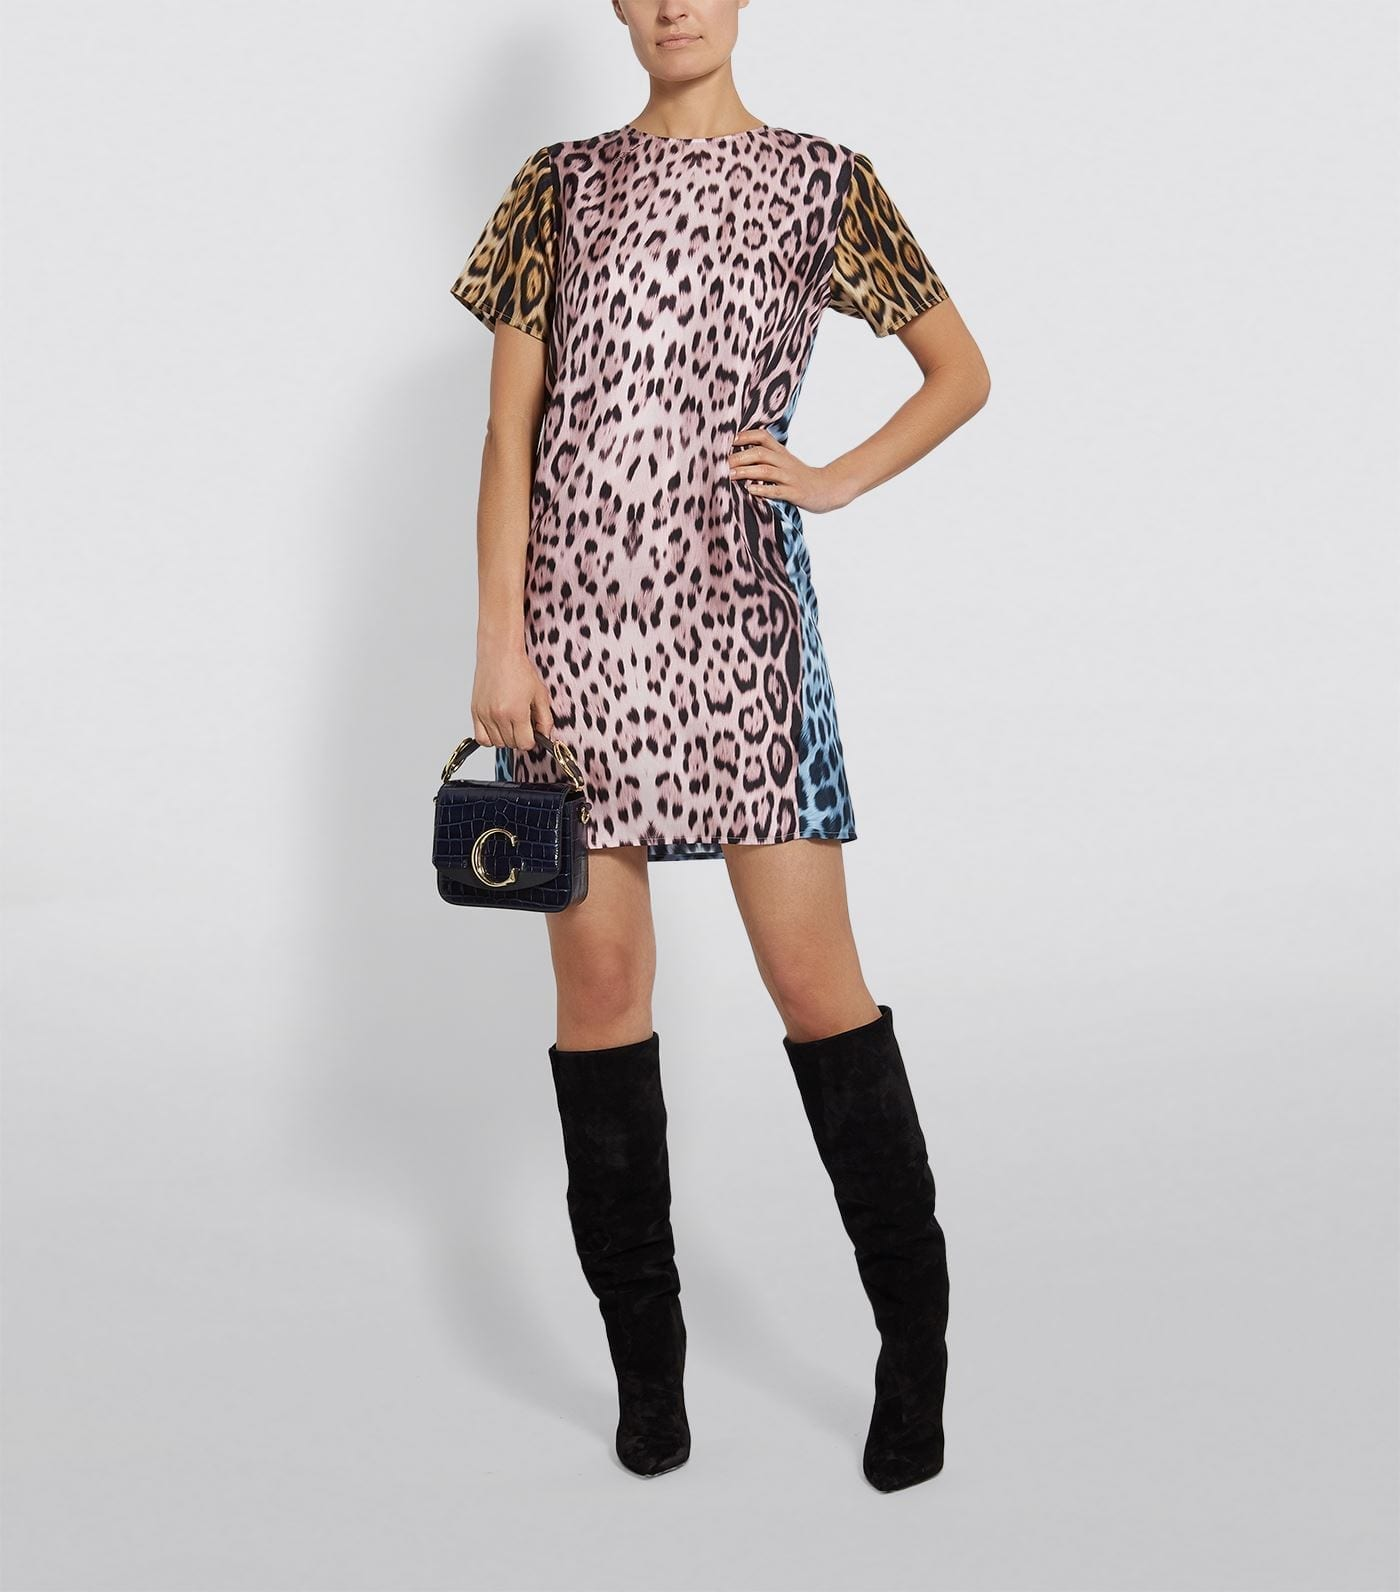 ROBERTO CAVALLI Silk Leopard Print Dress